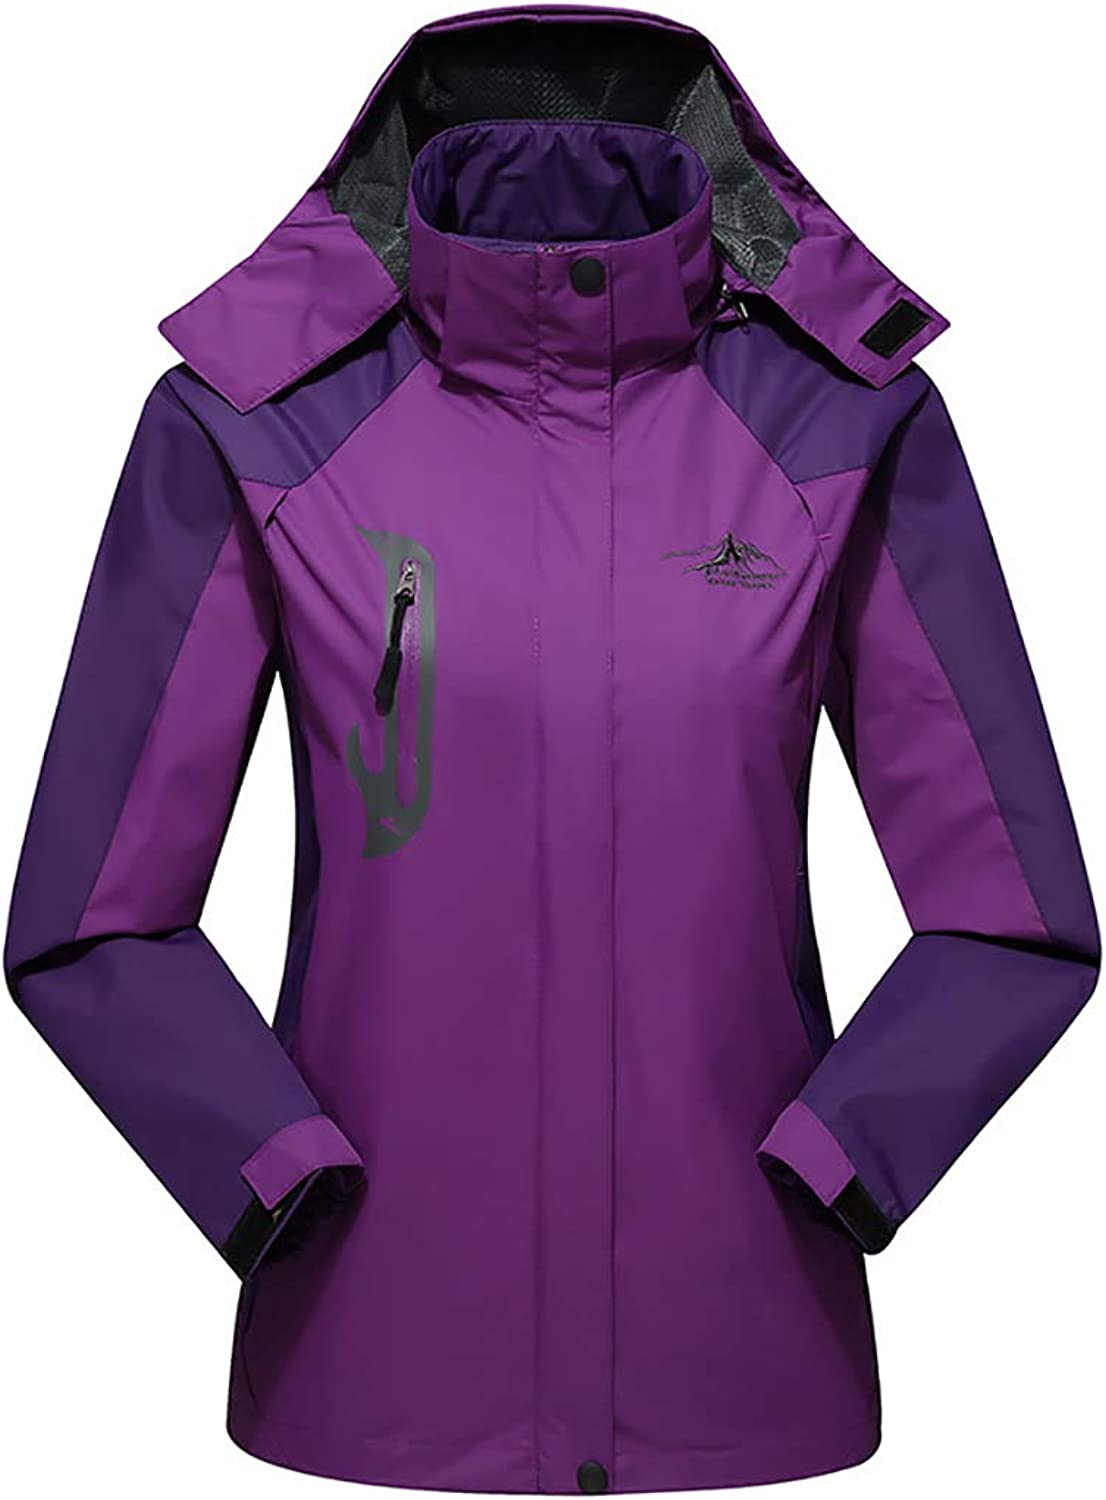 Woman's Outdoor Hooded Jacket Female Spring and Autumn SingleLayer Thin Mountaineering Clothes Windproof Waterproof Coat Removable Hood Size L4XL,Purple,XXXL